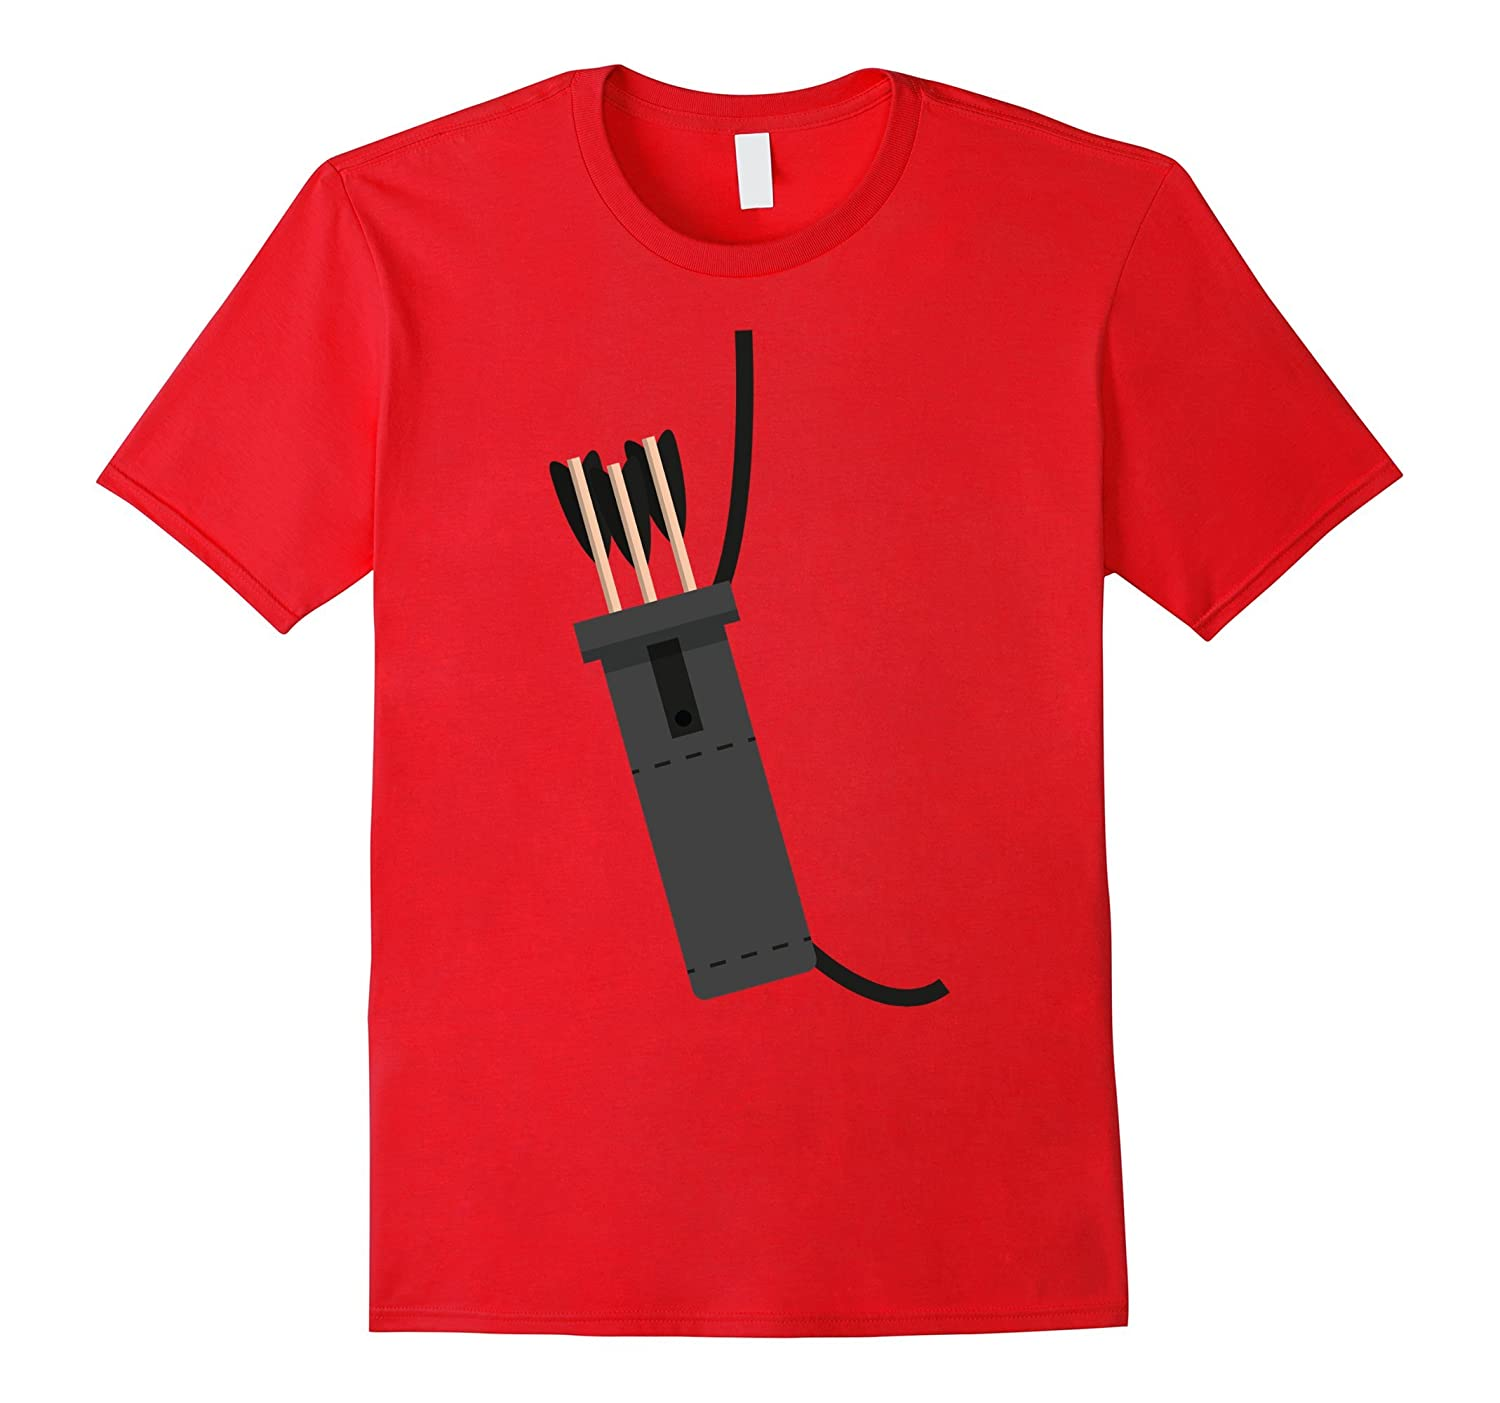 Archer Costume Halloween Tshirt - Funny Archery Arrow Gift-FL